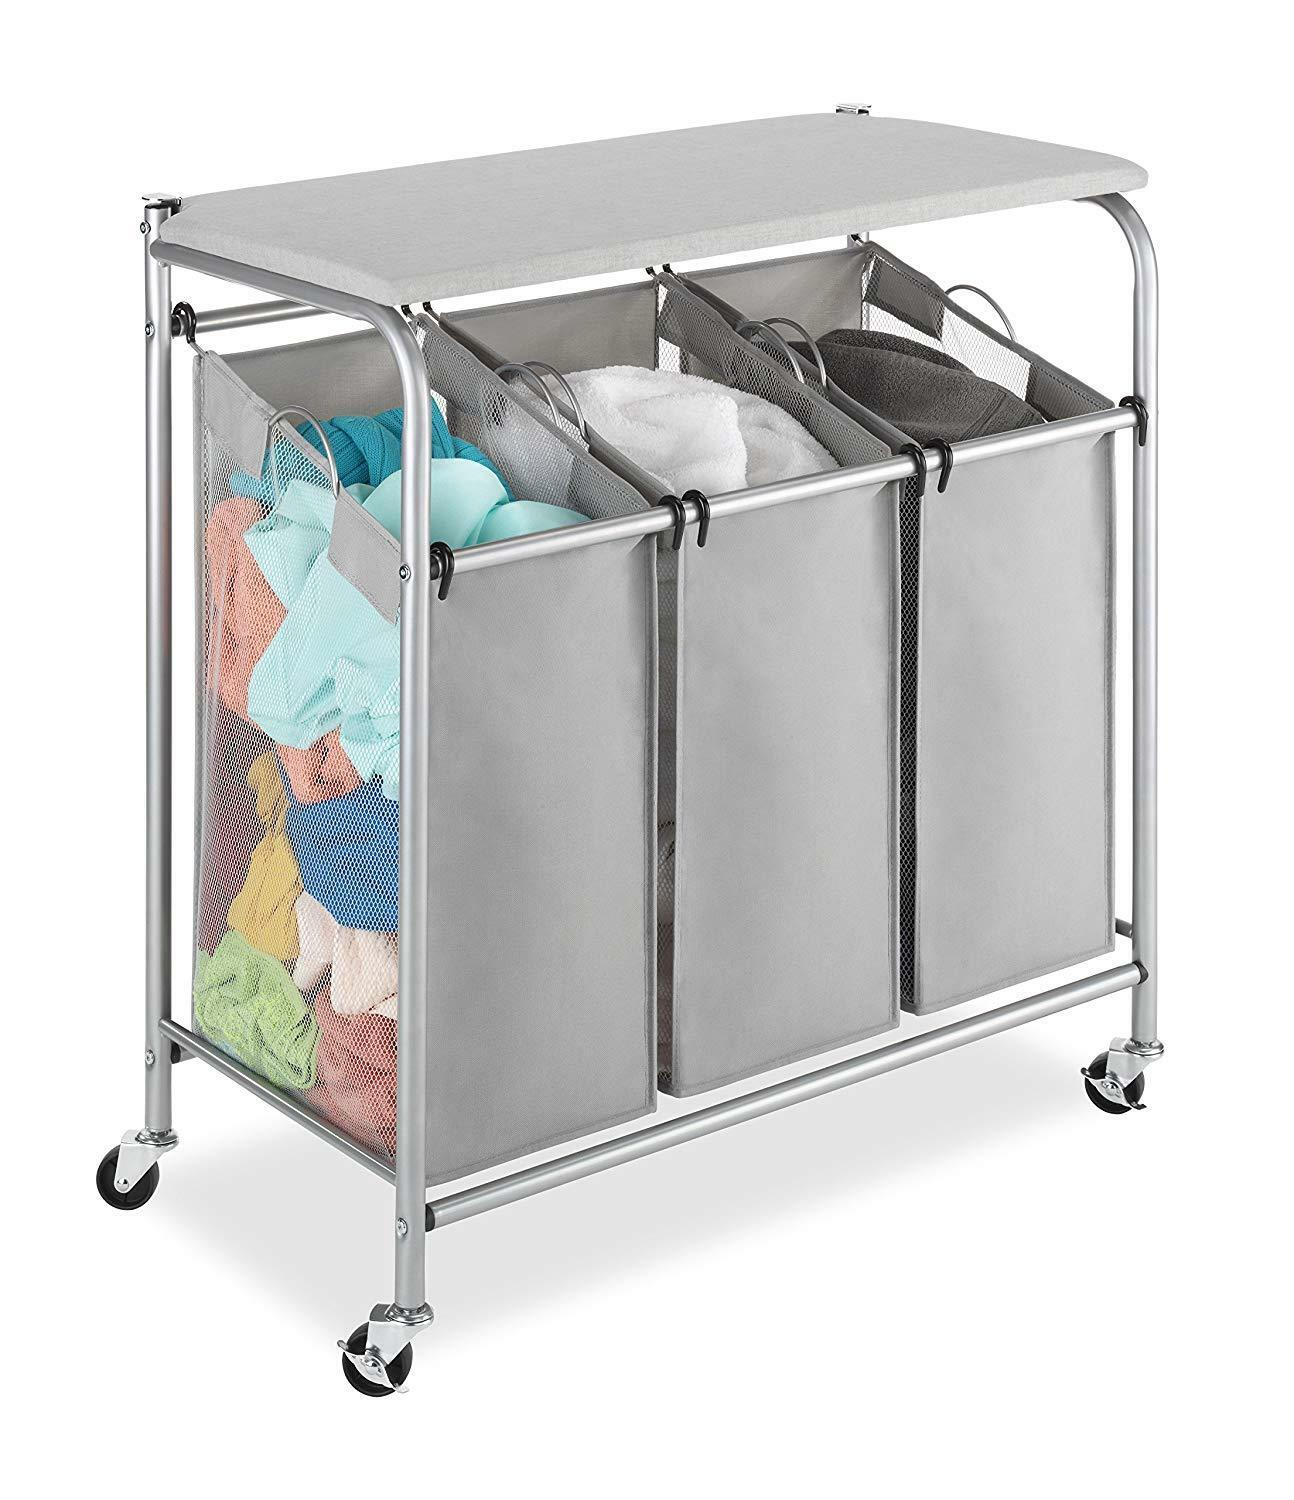 Silber 3-Compartment Mesh Sided Bag Rolling Laundry Hamper w Folding Top Rack